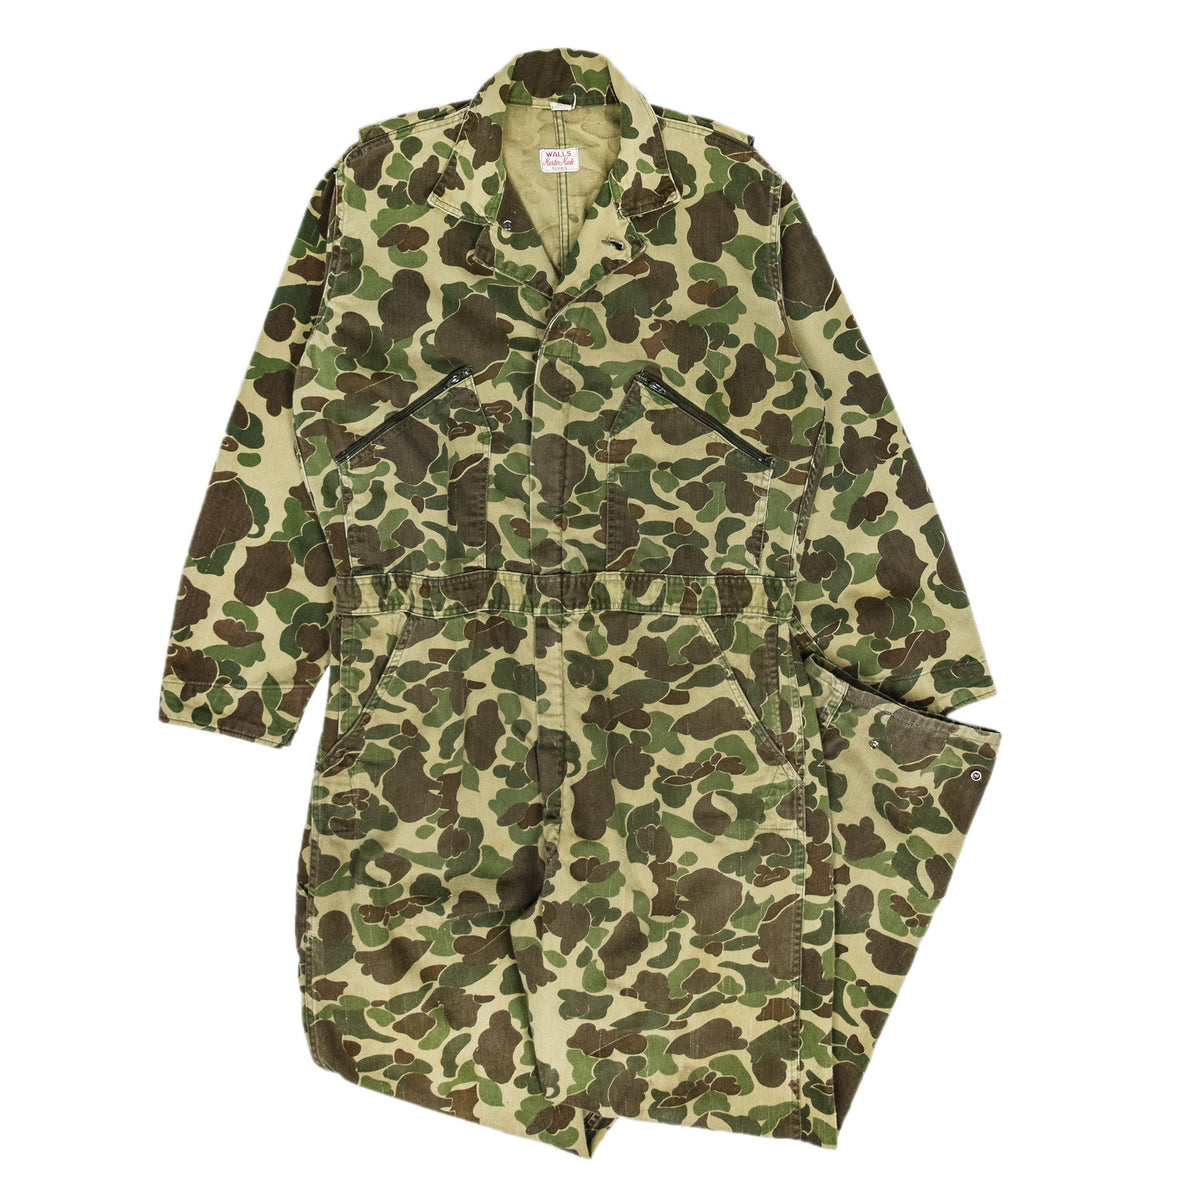 Vintage Walls Master Made Duck Camo Hunting Coveralls Made in USA L front